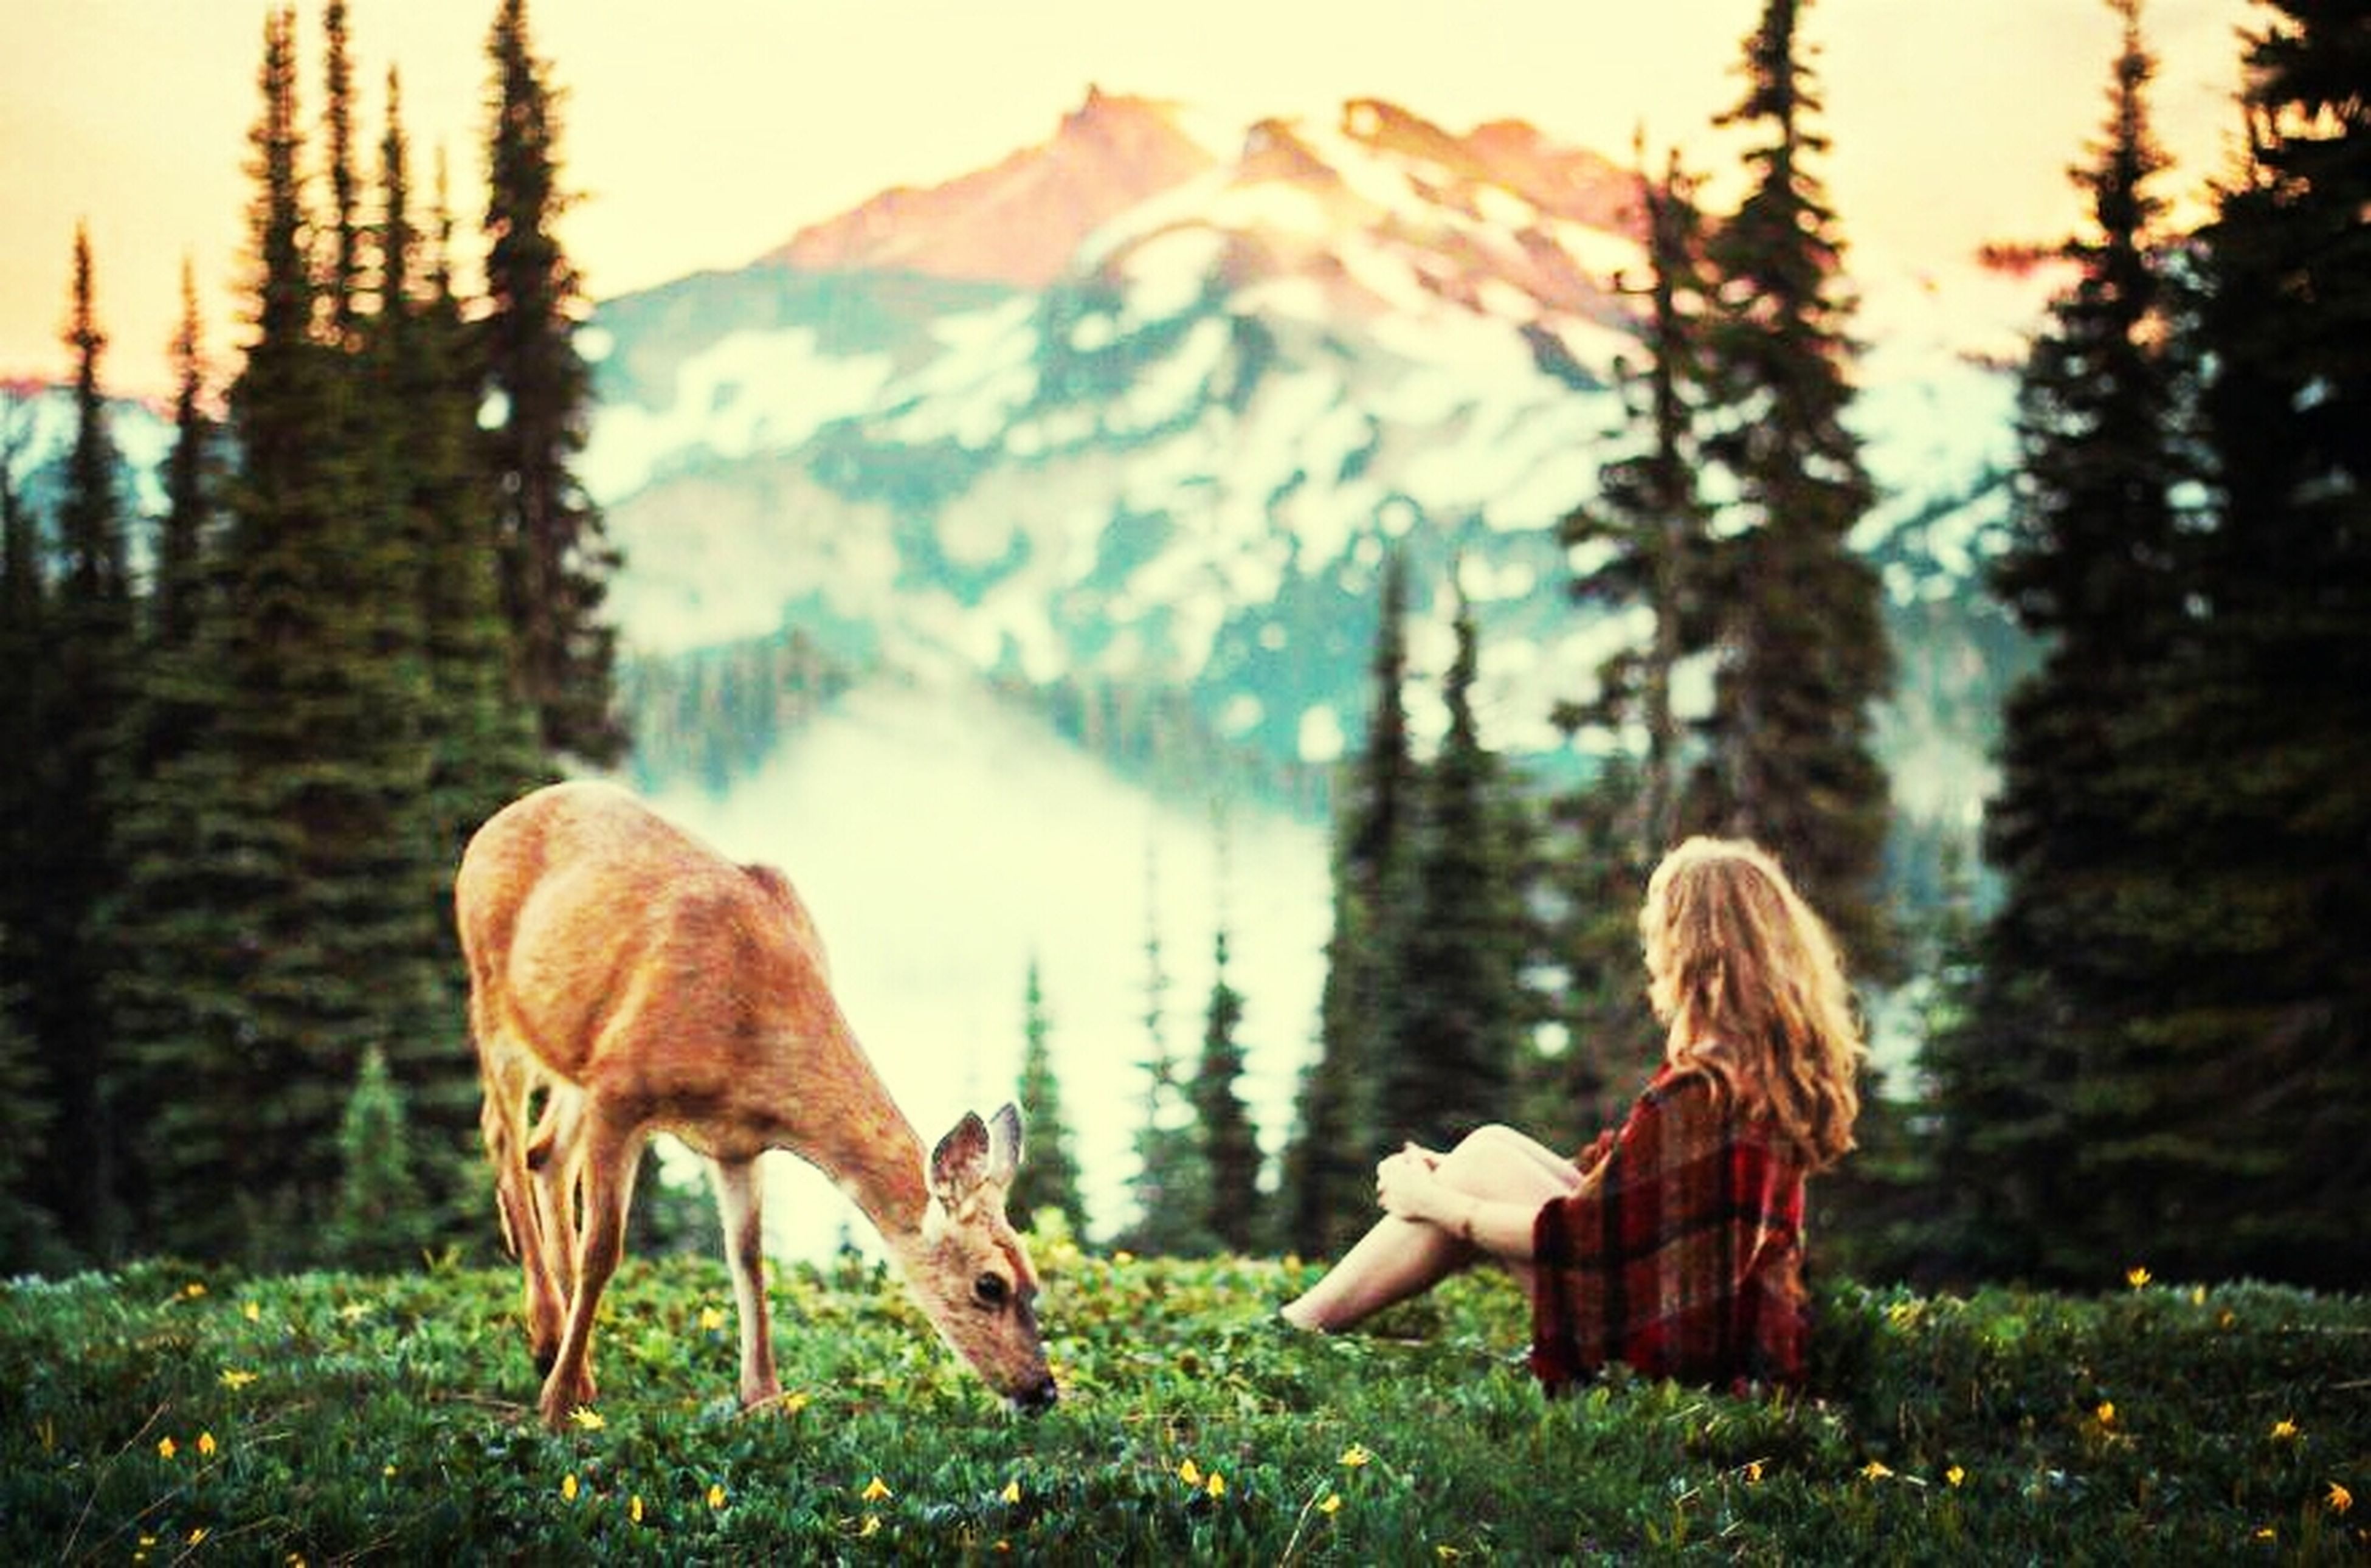 rear view, lifestyles, standing, full length, leisure activity, tree, mountain, casual clothing, grass, side view, three quarter length, nature, focus on foreground, field, long hair, beauty in nature, tranquility, person